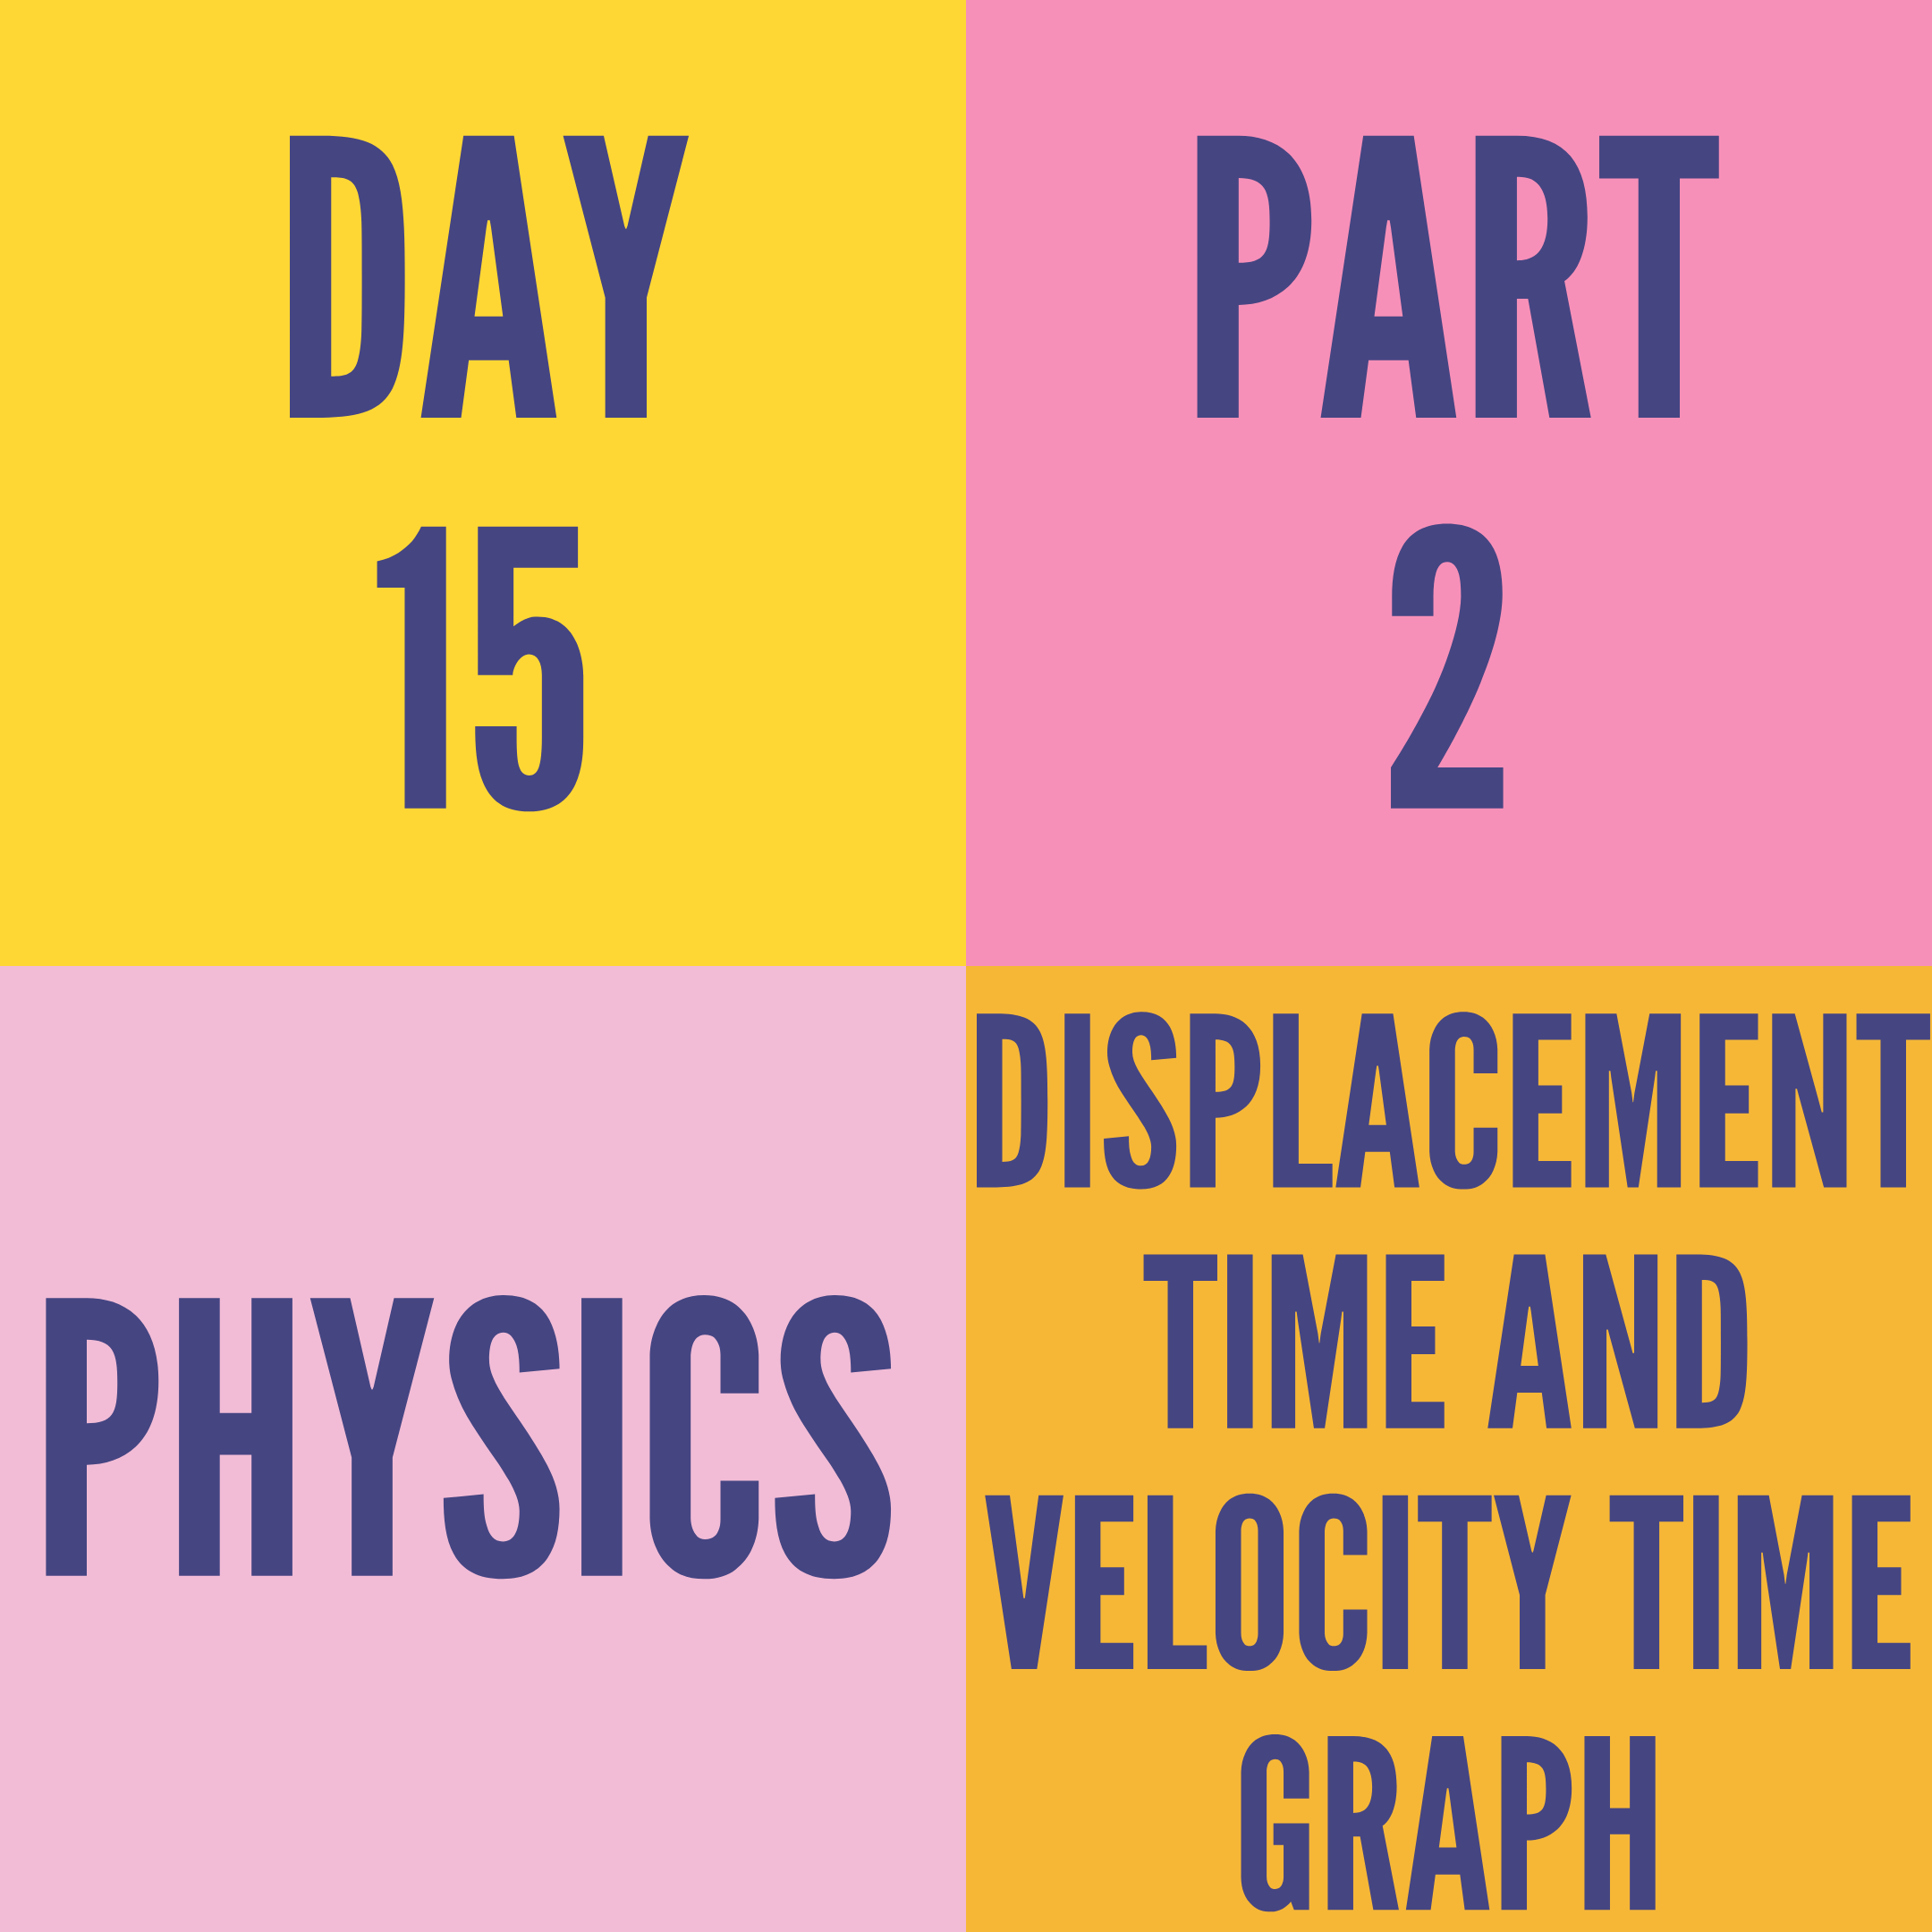 DAY-15 PART-2 DISPLACEMENT TIME AND VELOCITY TIME GRAPH